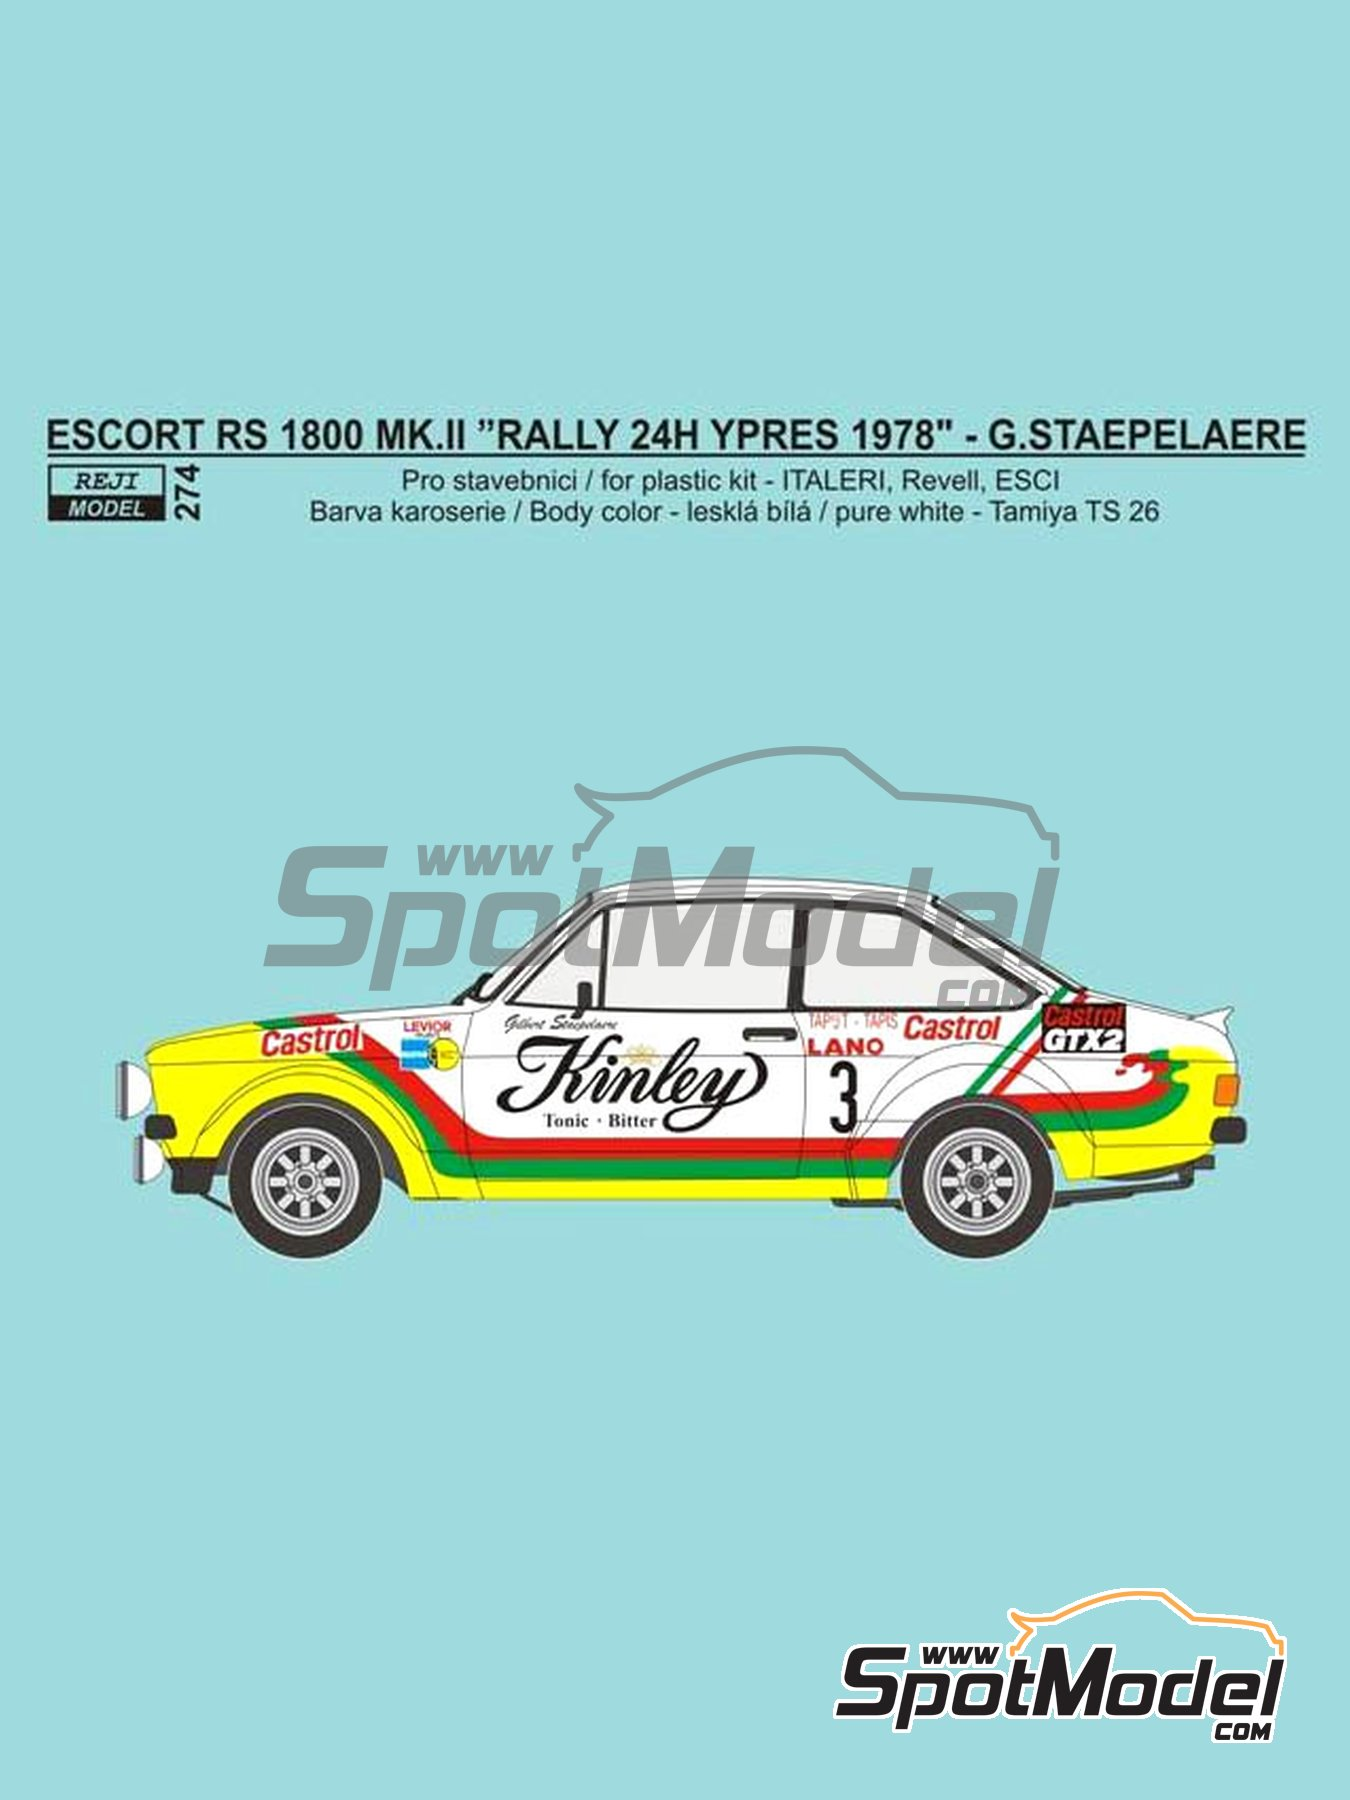 Ford Escort RS 1800 Mk. II Kinley - Ypres Rally 1978 | Marking / livery in 1/24 scale manufactured by Reji Model (ref. REJI-274) image